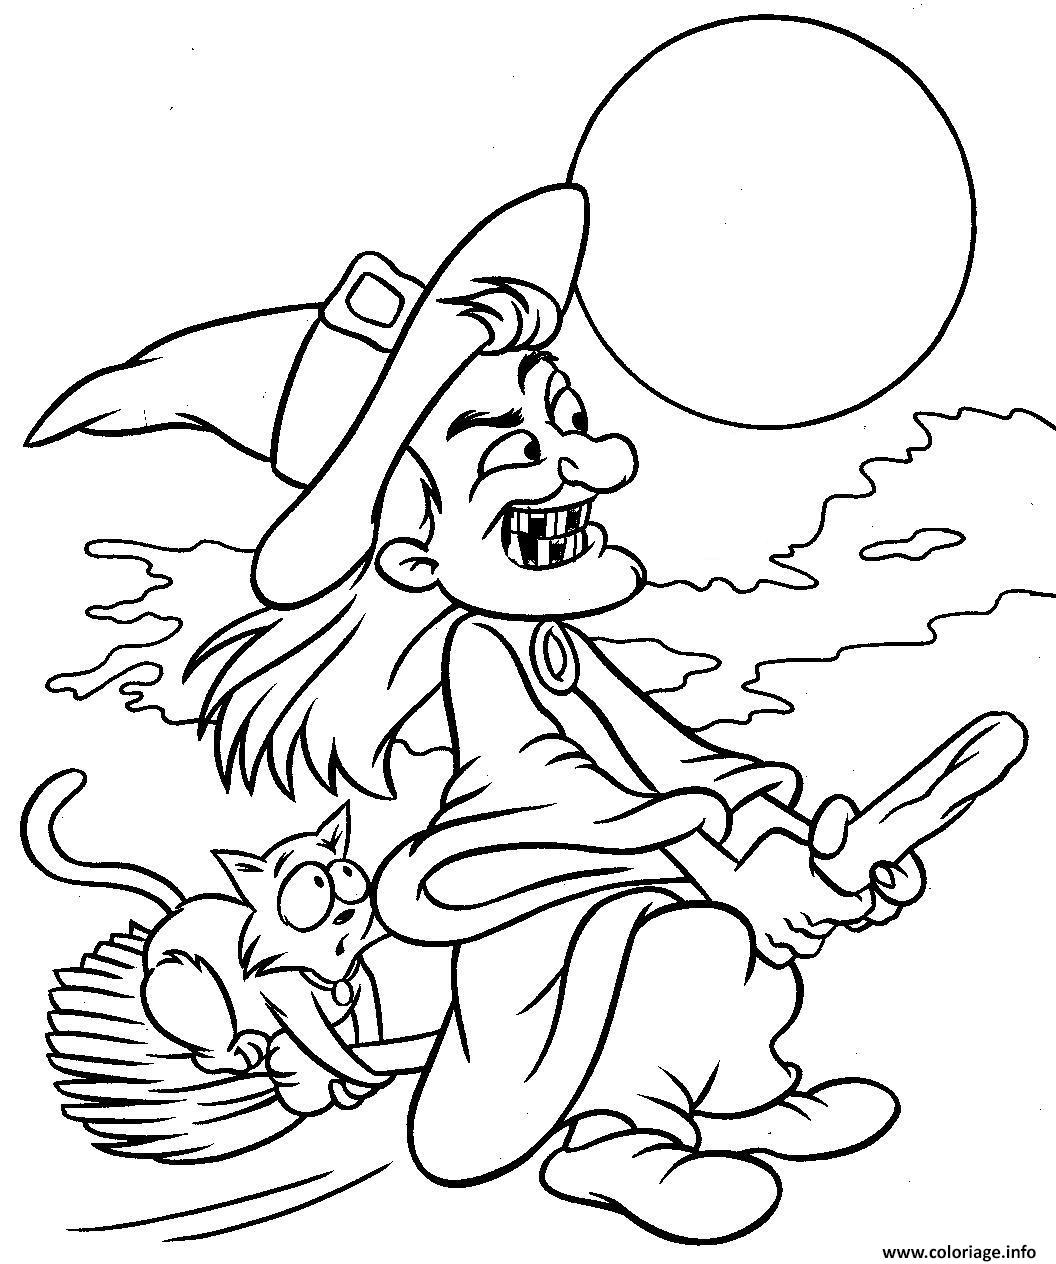 Coloriage halloween sorciere et son chat - Dessins halloween a imprimer ...